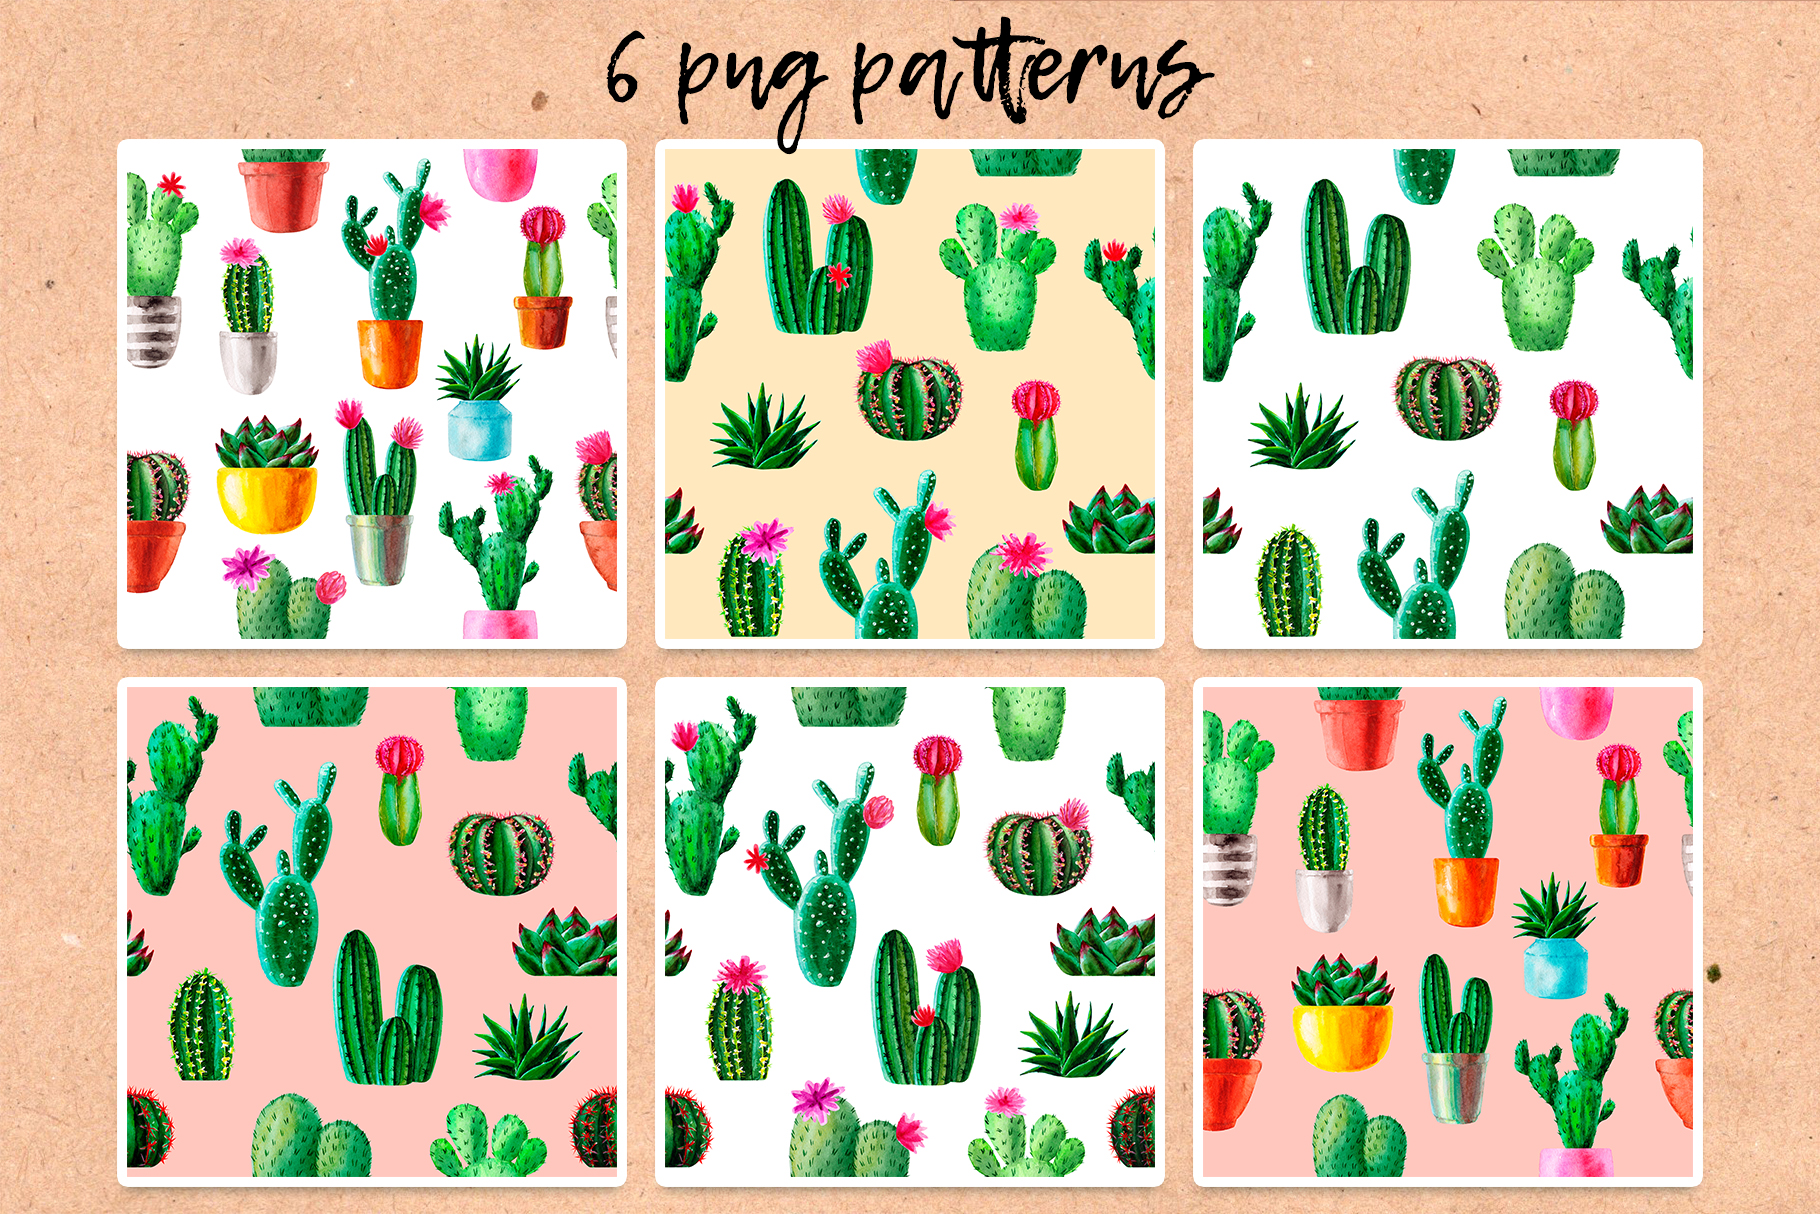 Watercolor Cactus. Cacti Patterns example image 4